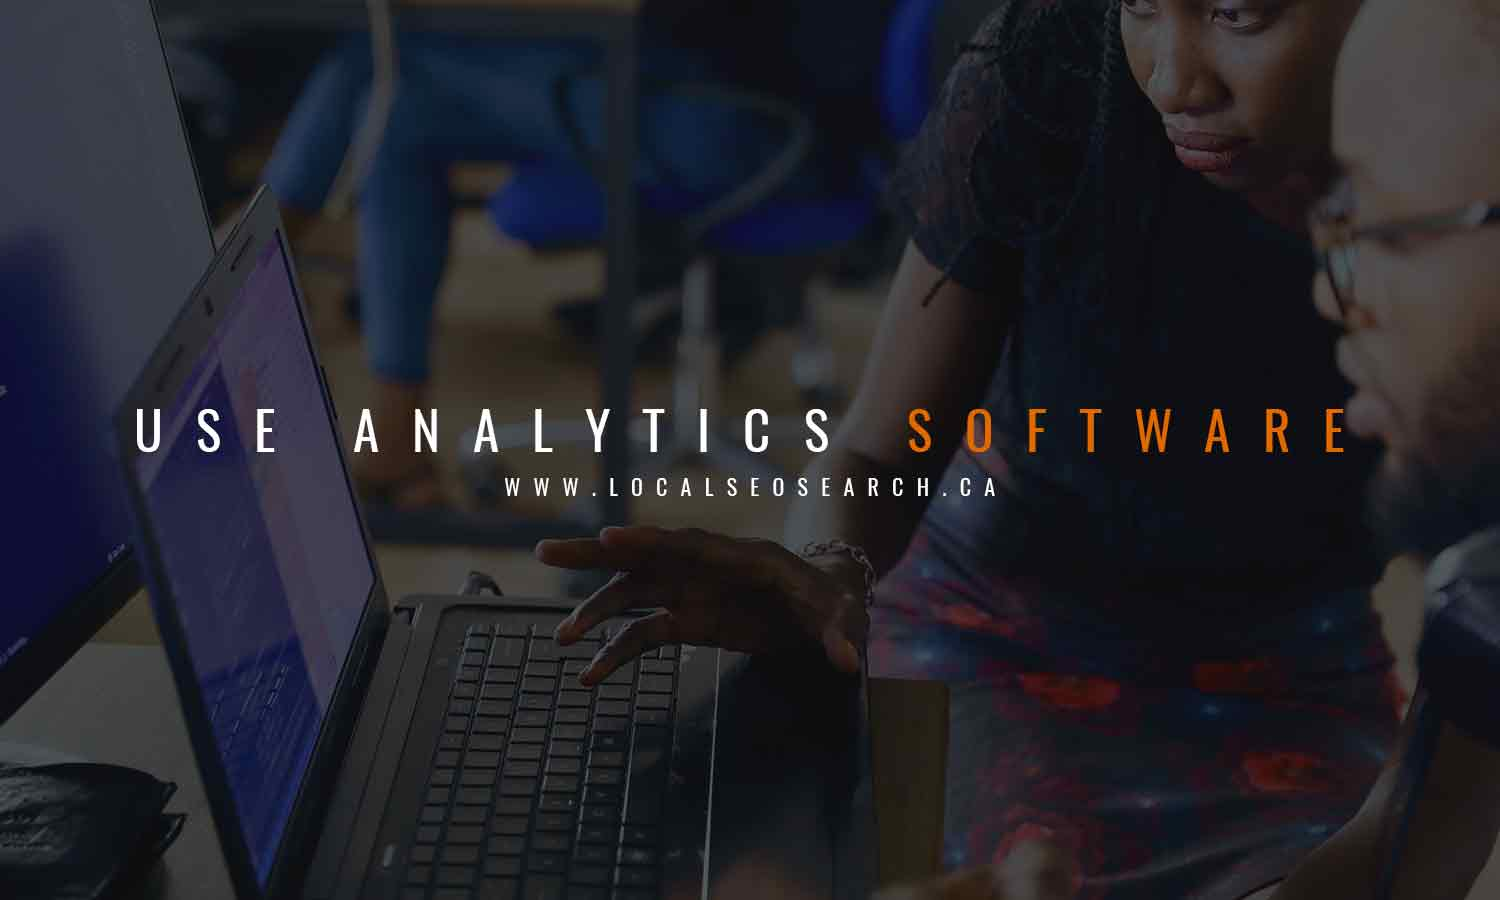 Use-analytics-software